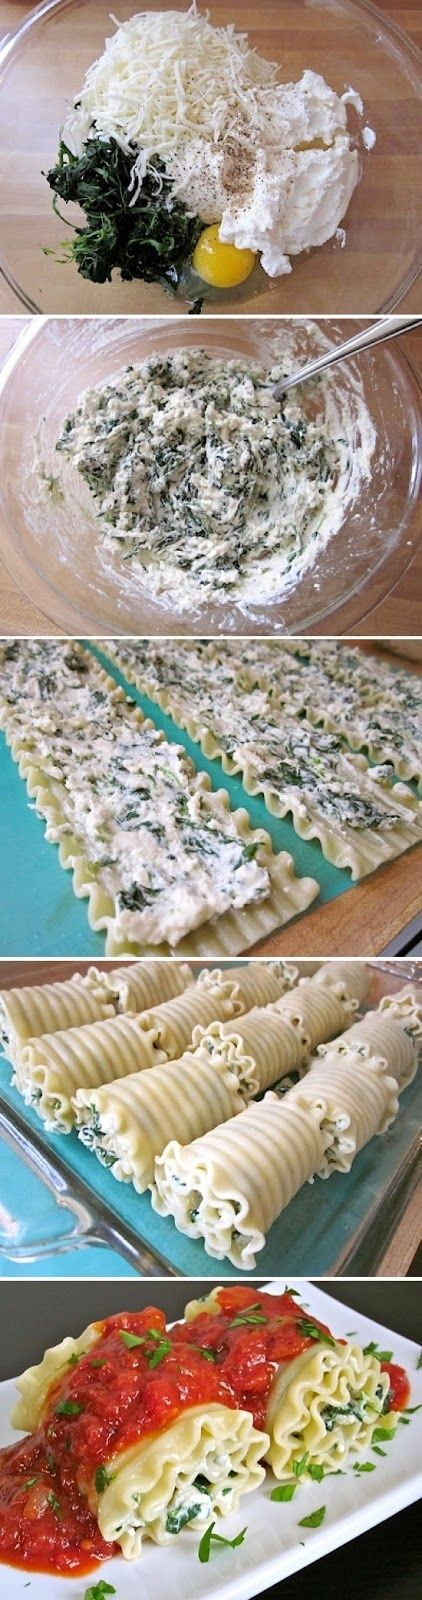 Step-by-step Spinach Lasagna Roll Ups Recipe